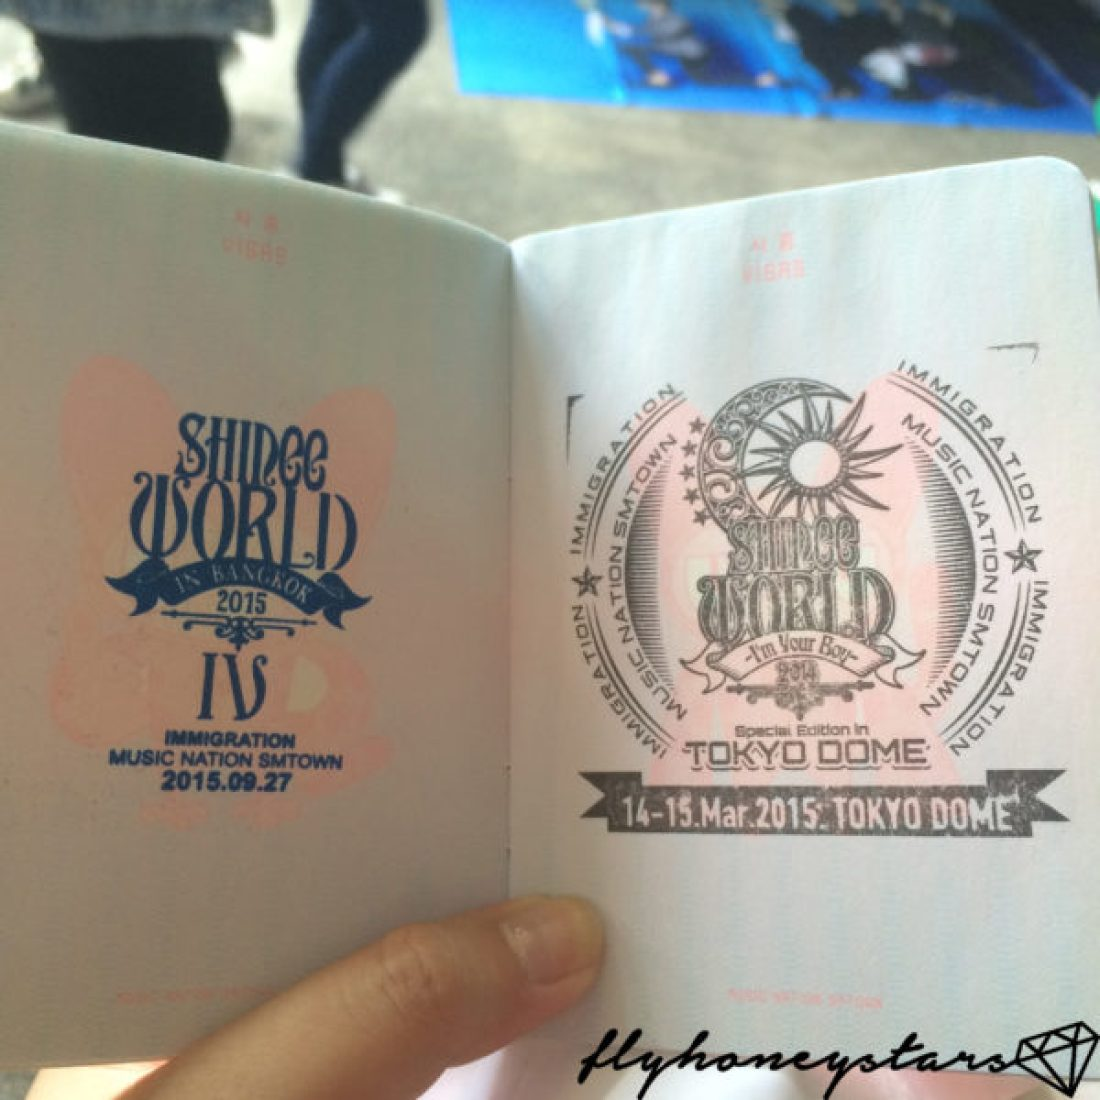 shinee world 4 bangkok 2